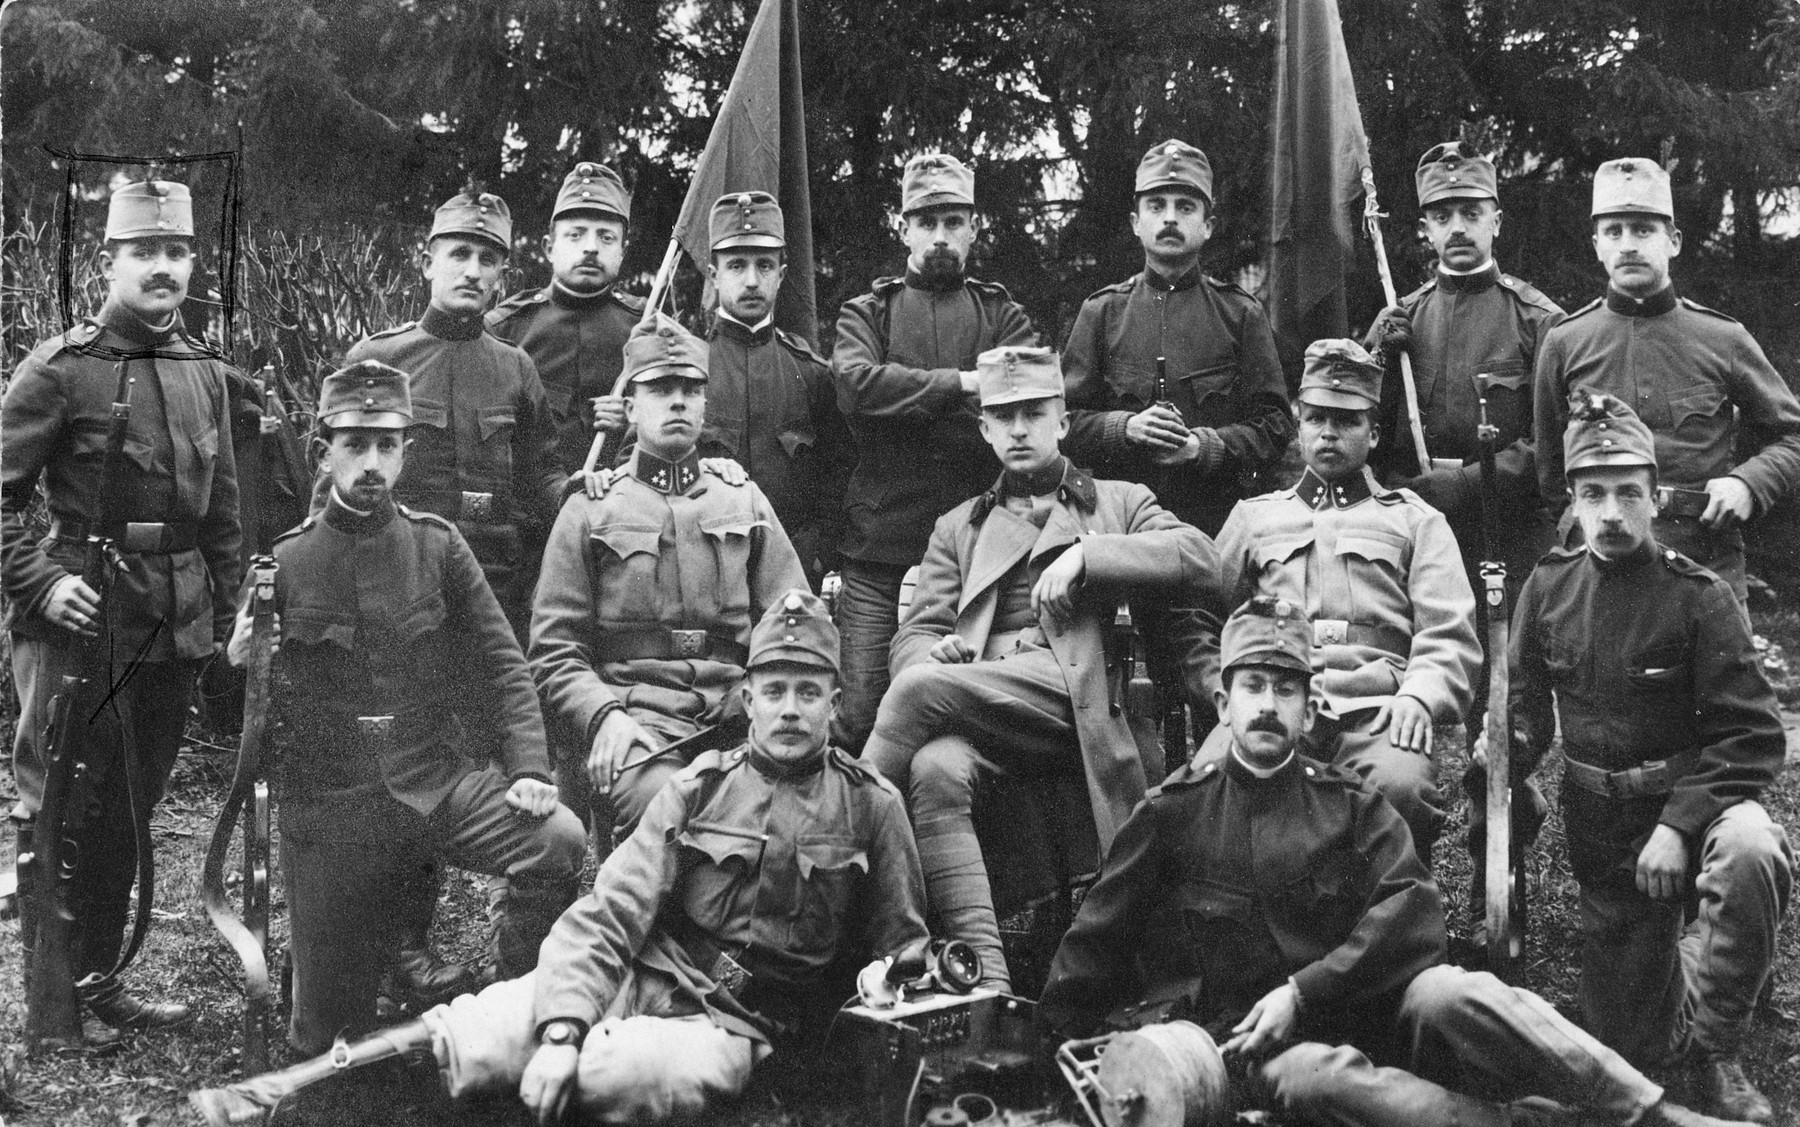 Group portrait of Austrian soldiers.  Standing on the far left is Leopold Hahn, the father of Edith Hahn.